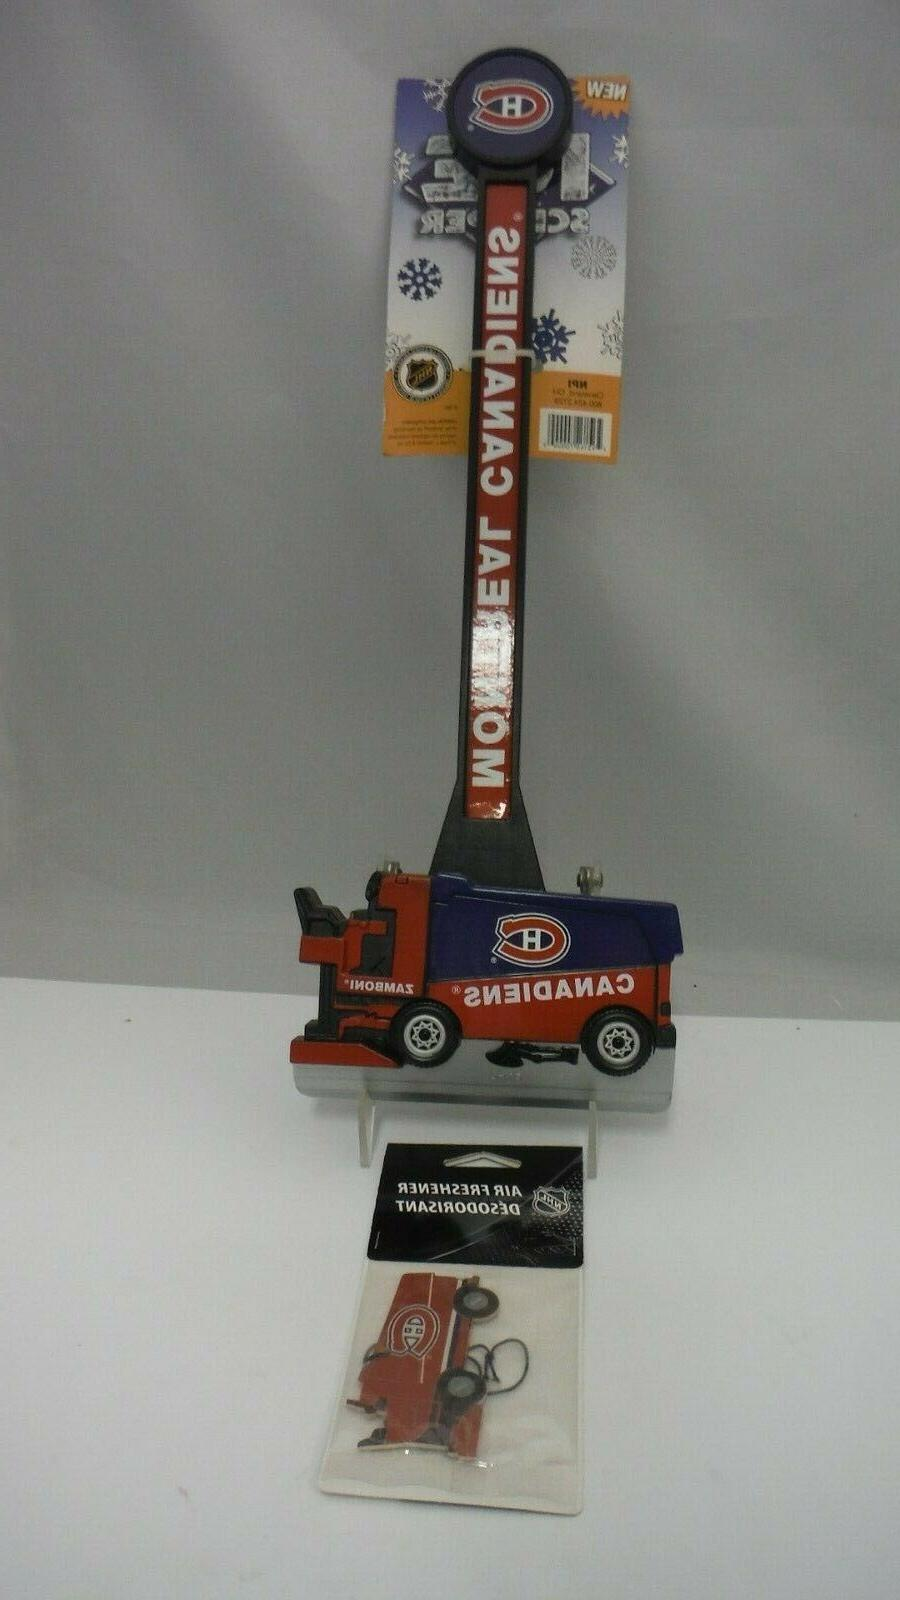 nhl licensed product montreal canadians zamboni ice